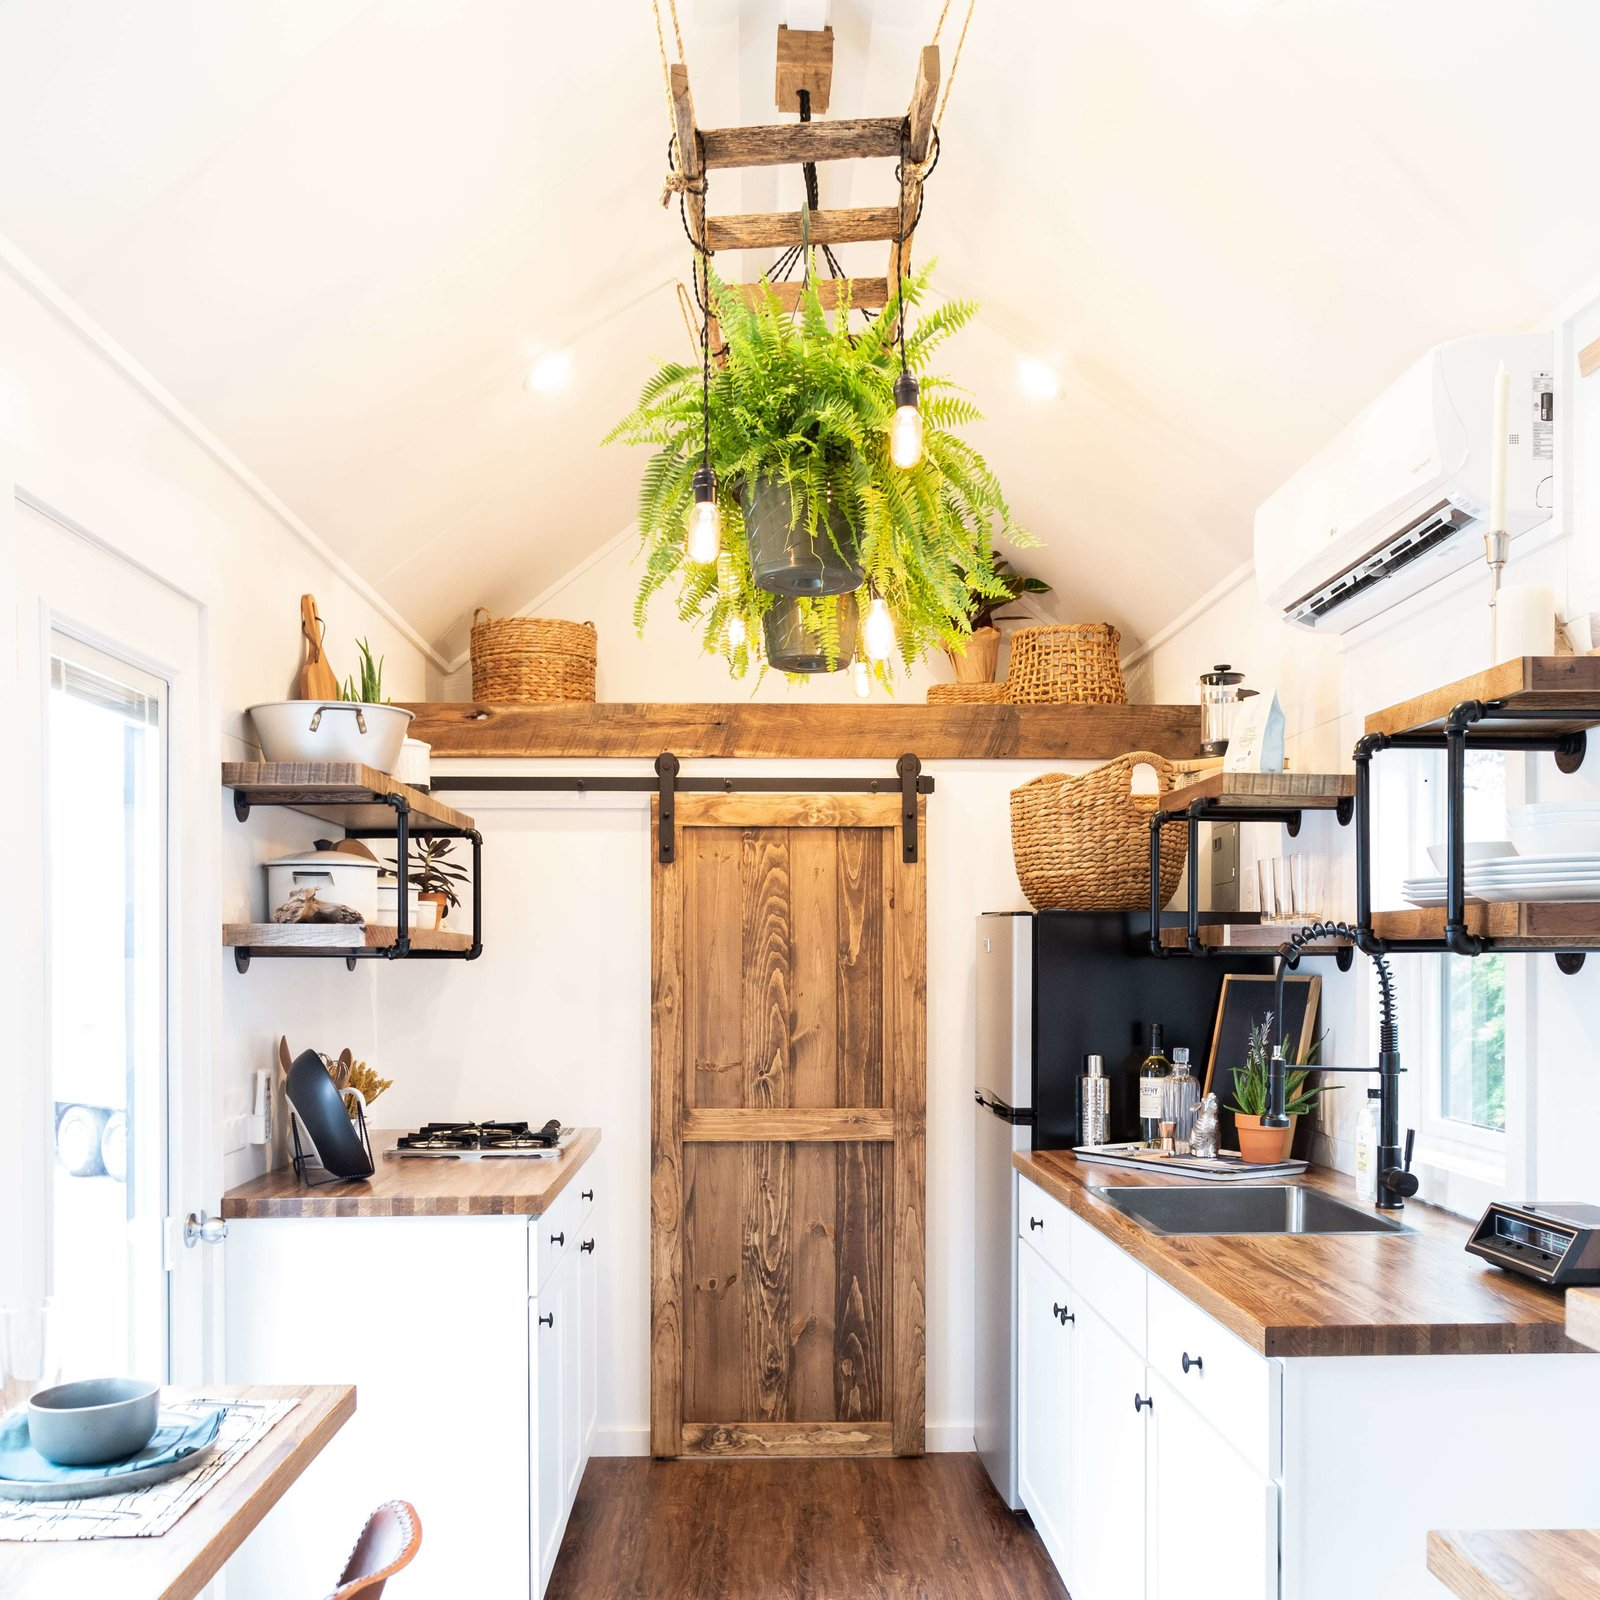 Liberation Tiny Homes Stoltzfus Rumspringa kitchen